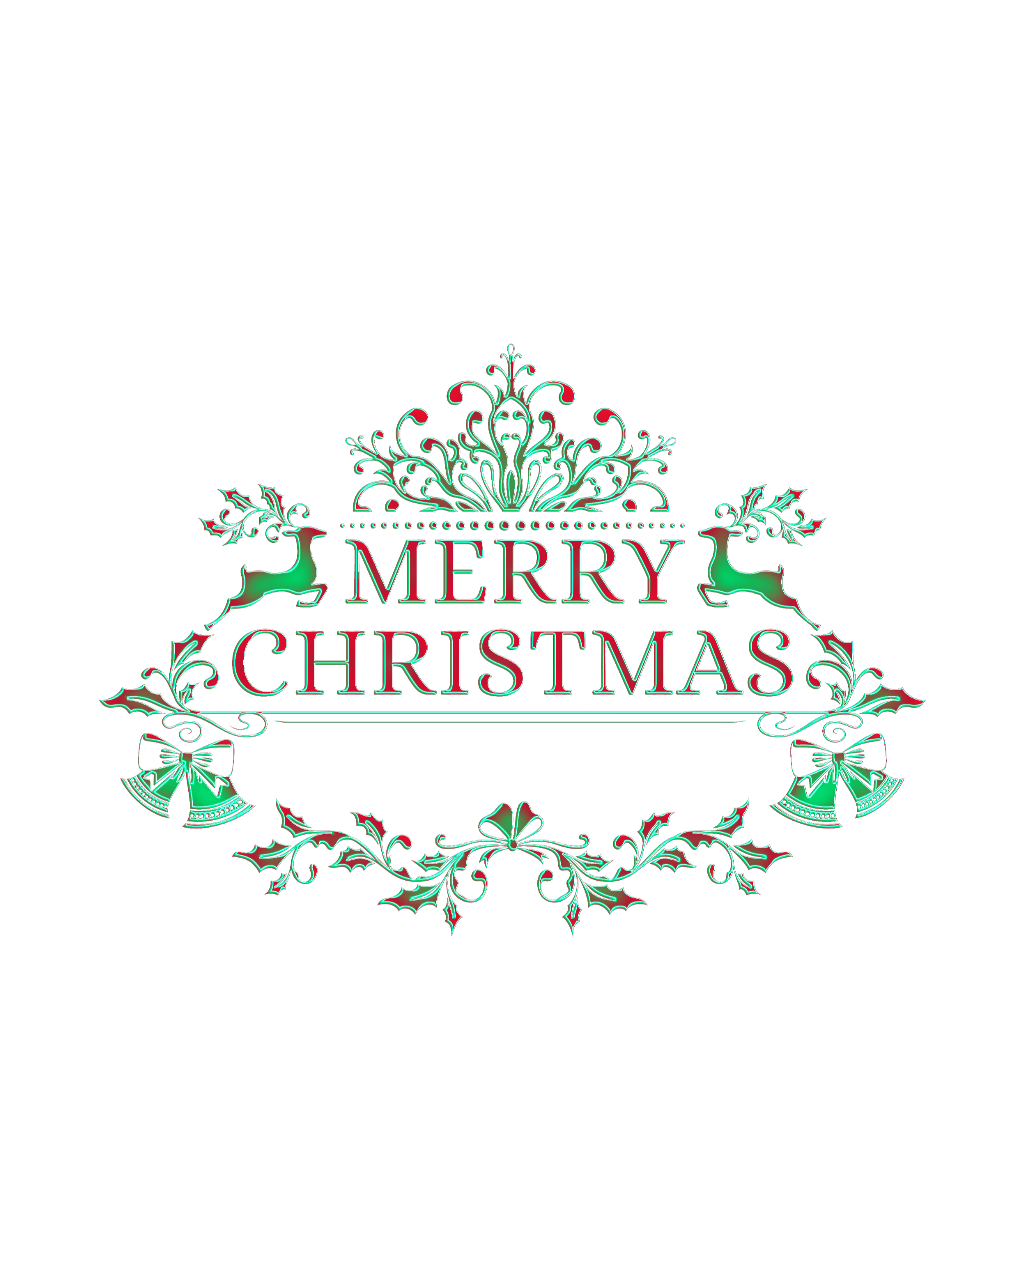 #christmas  #christmascard  #christmasspirit  #text #merrychristmas  33#christmasornaments #holiday #overlay #transparent  #png